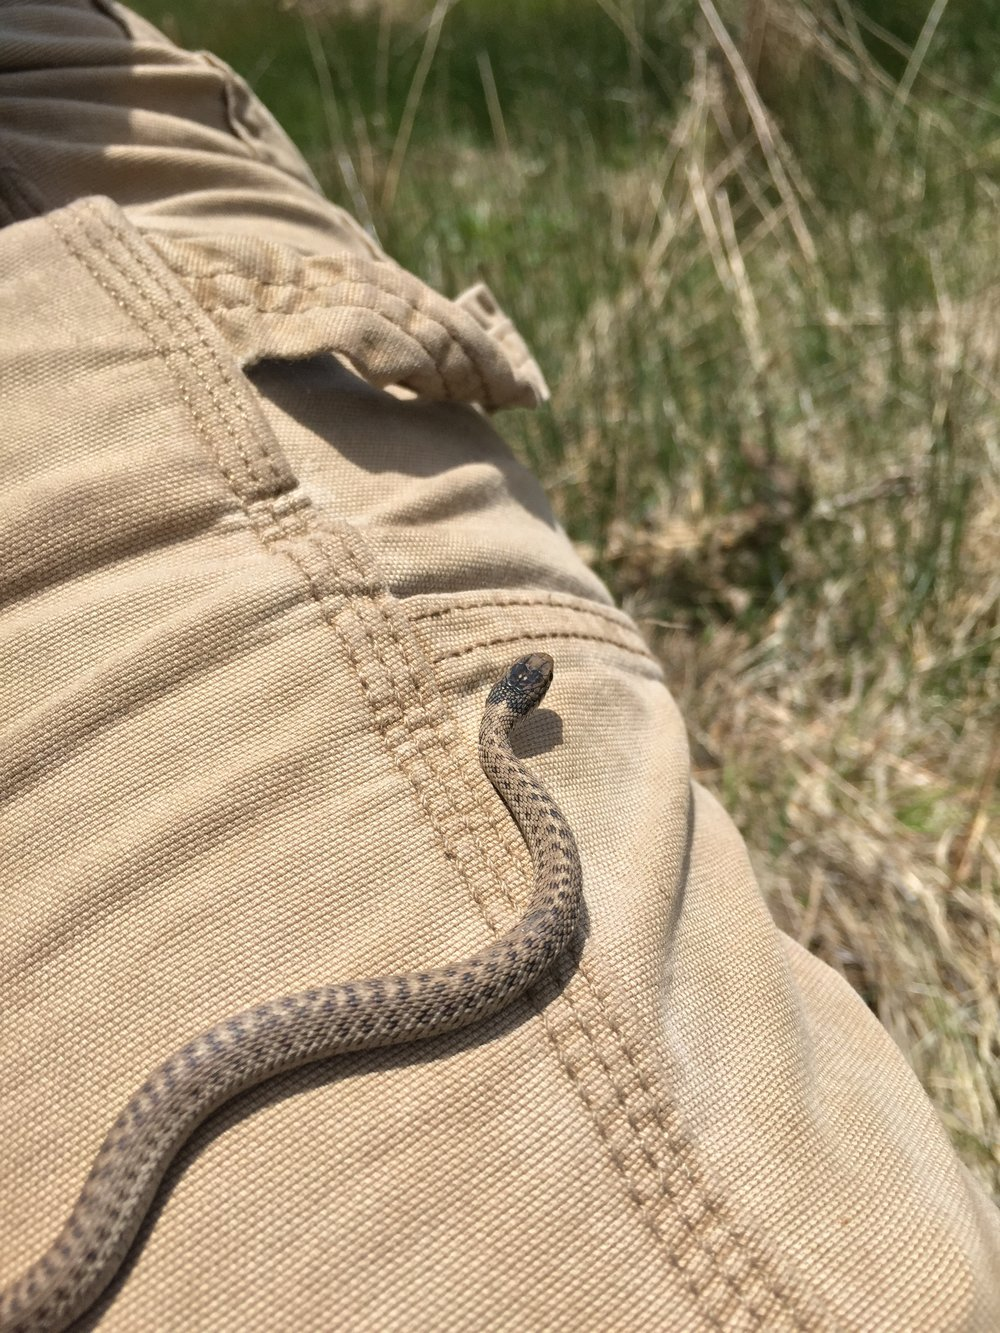 This juvenile bullsnake will grow to adulthood hunting juvenile prairie dogs.  ©MRR 2016